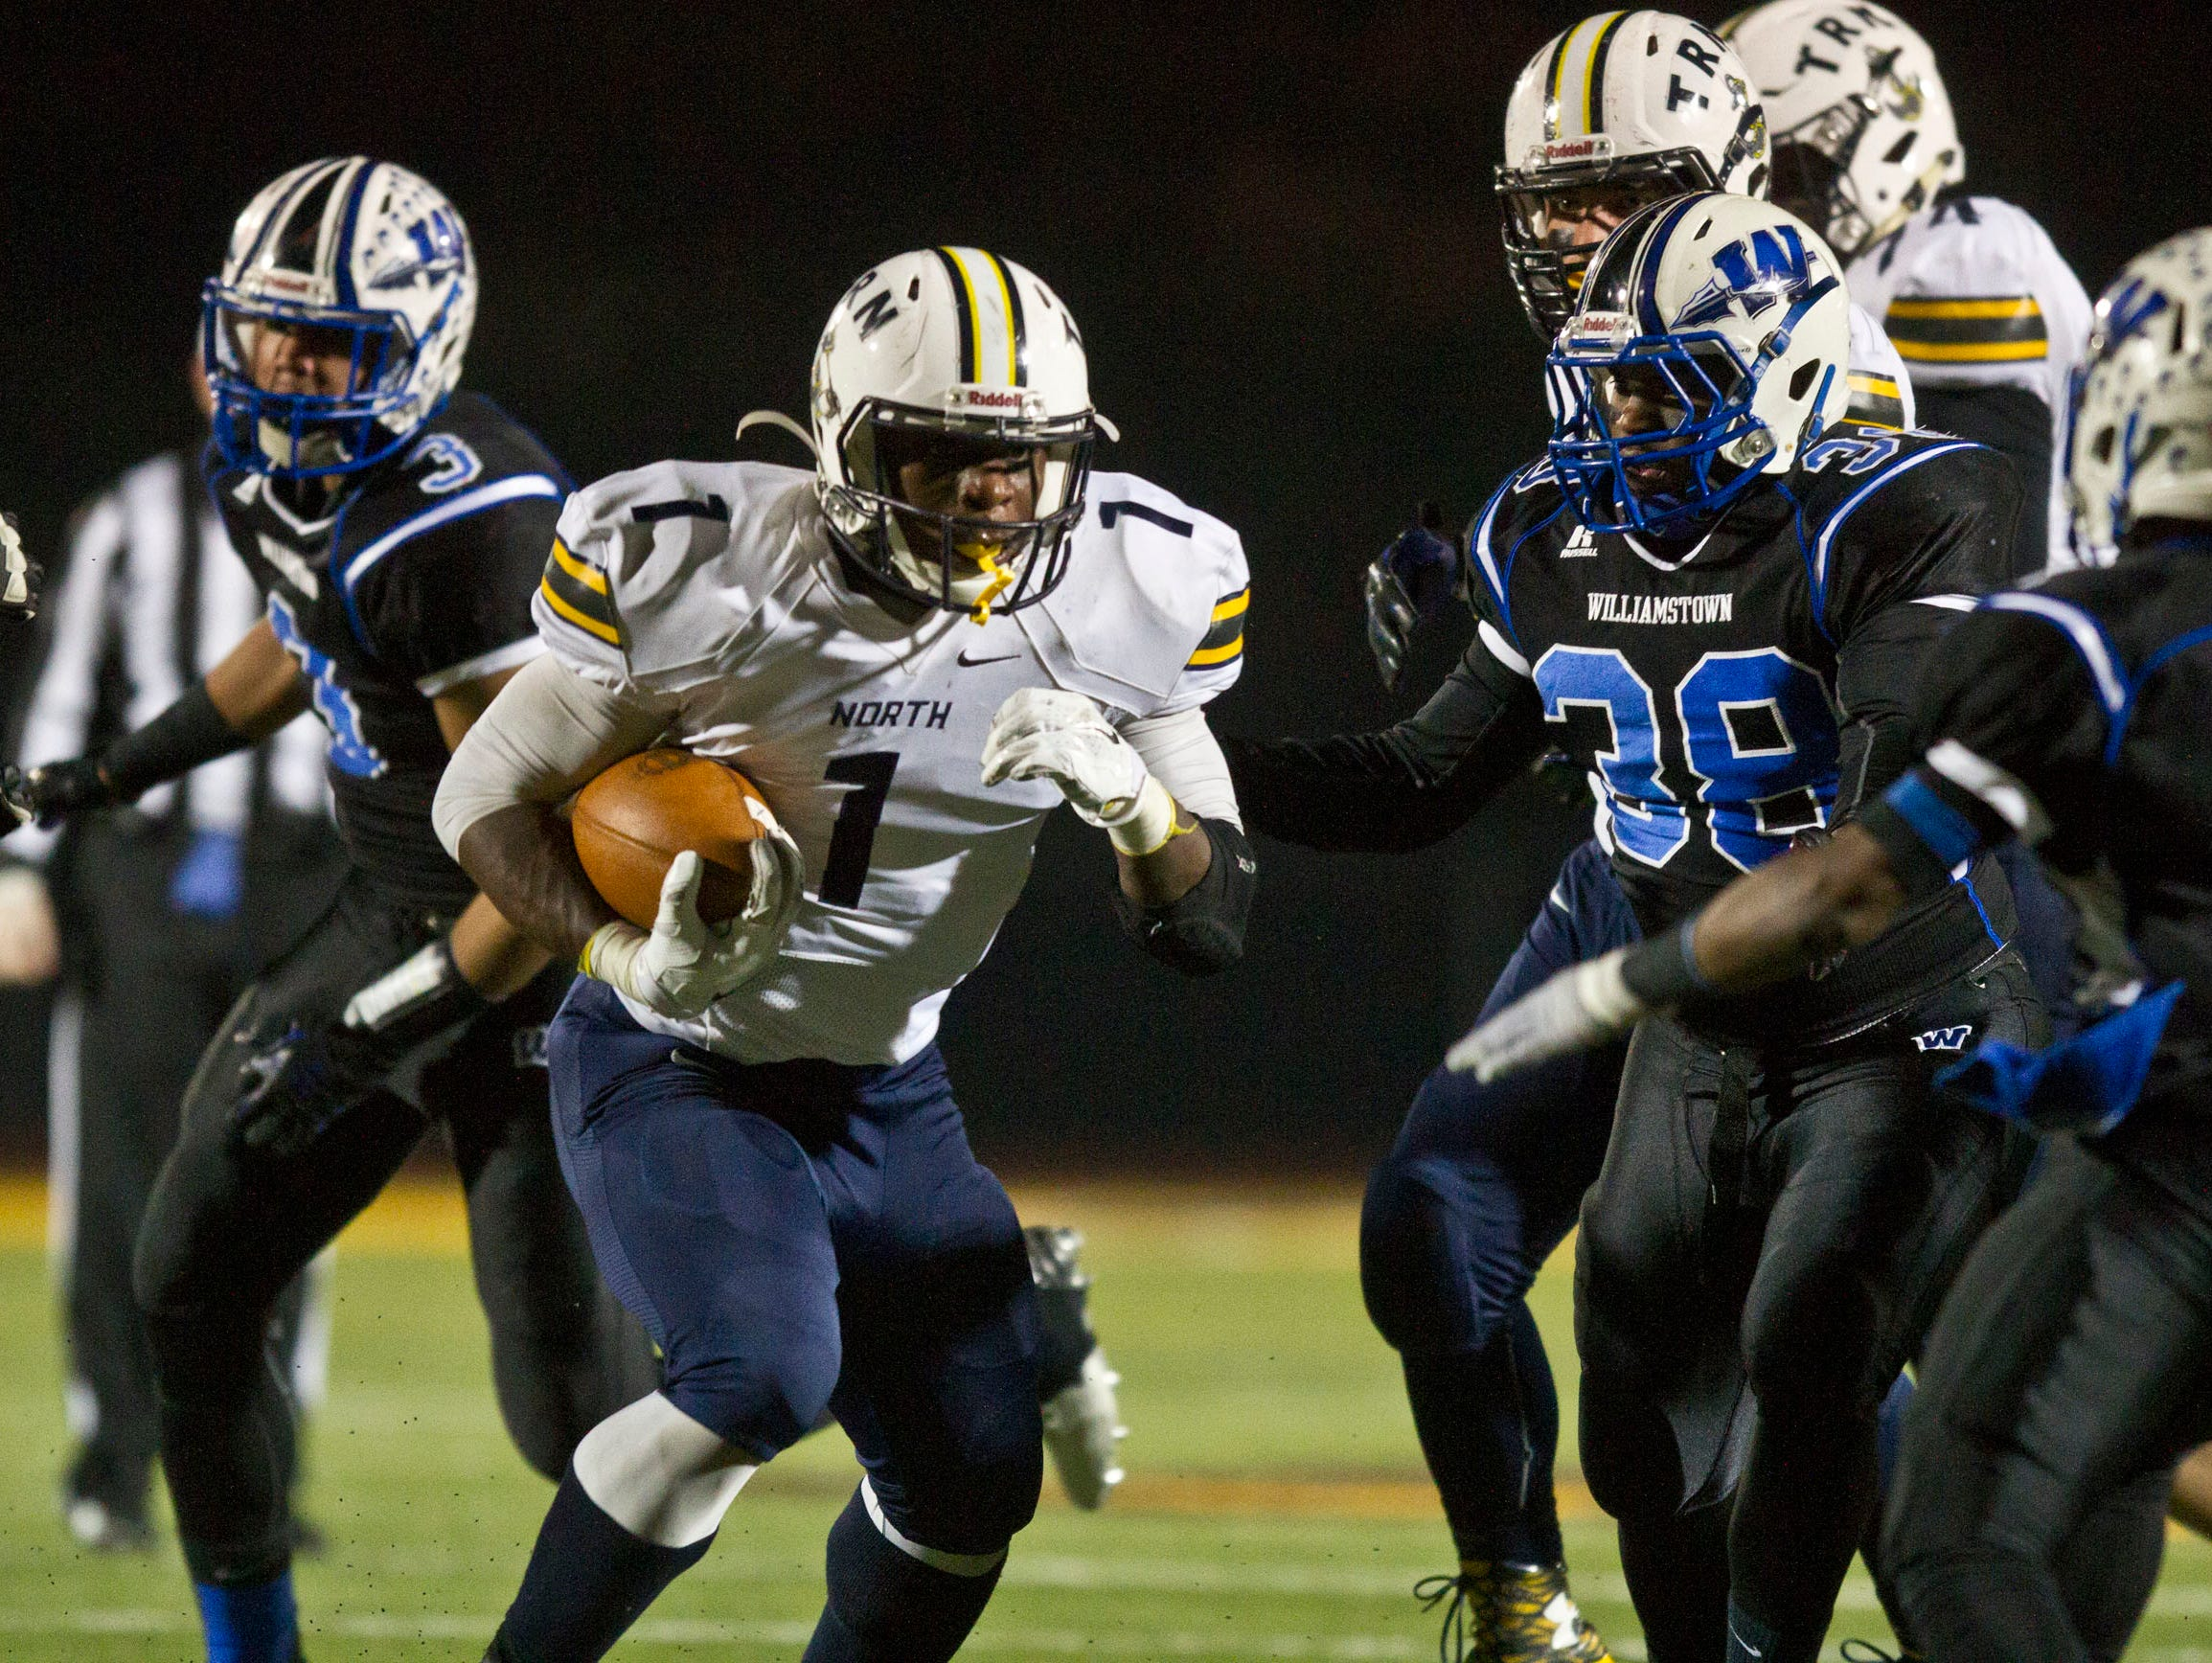 Toms River North's Asante Moorer gains yardage.Toms River North defeats Williamstown for the NJSIAA Group V State Championship title. Glassboro, NJ Saturday, December 5, 2015 @dhoodhood